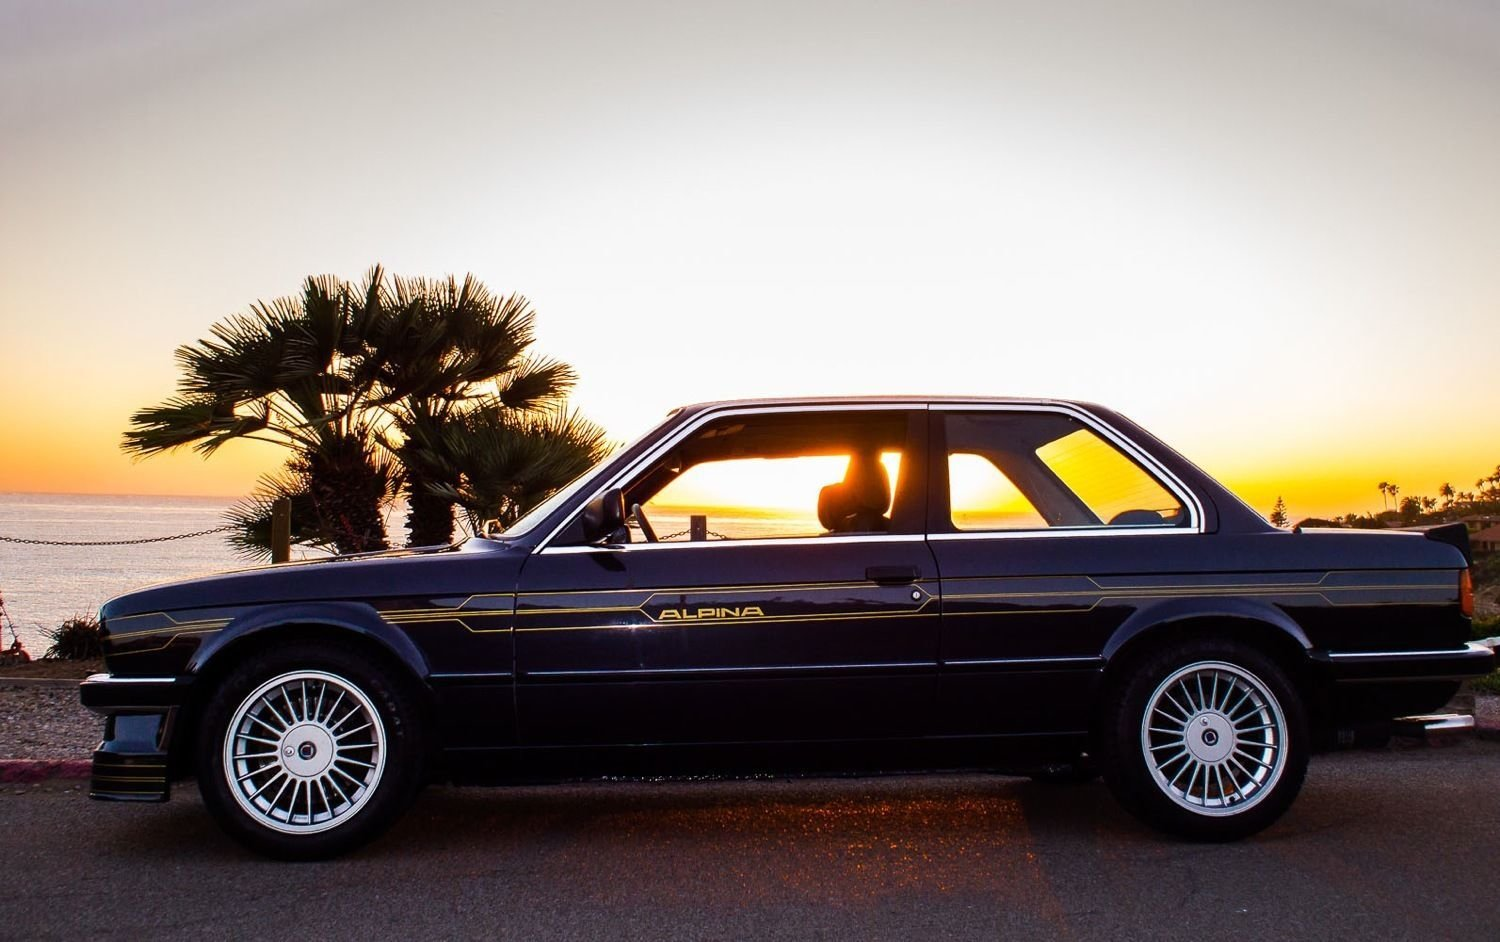 Latest One Of Only 218 Alpina B6 3 5 Cars Ever Made Can Be Yours Free Download